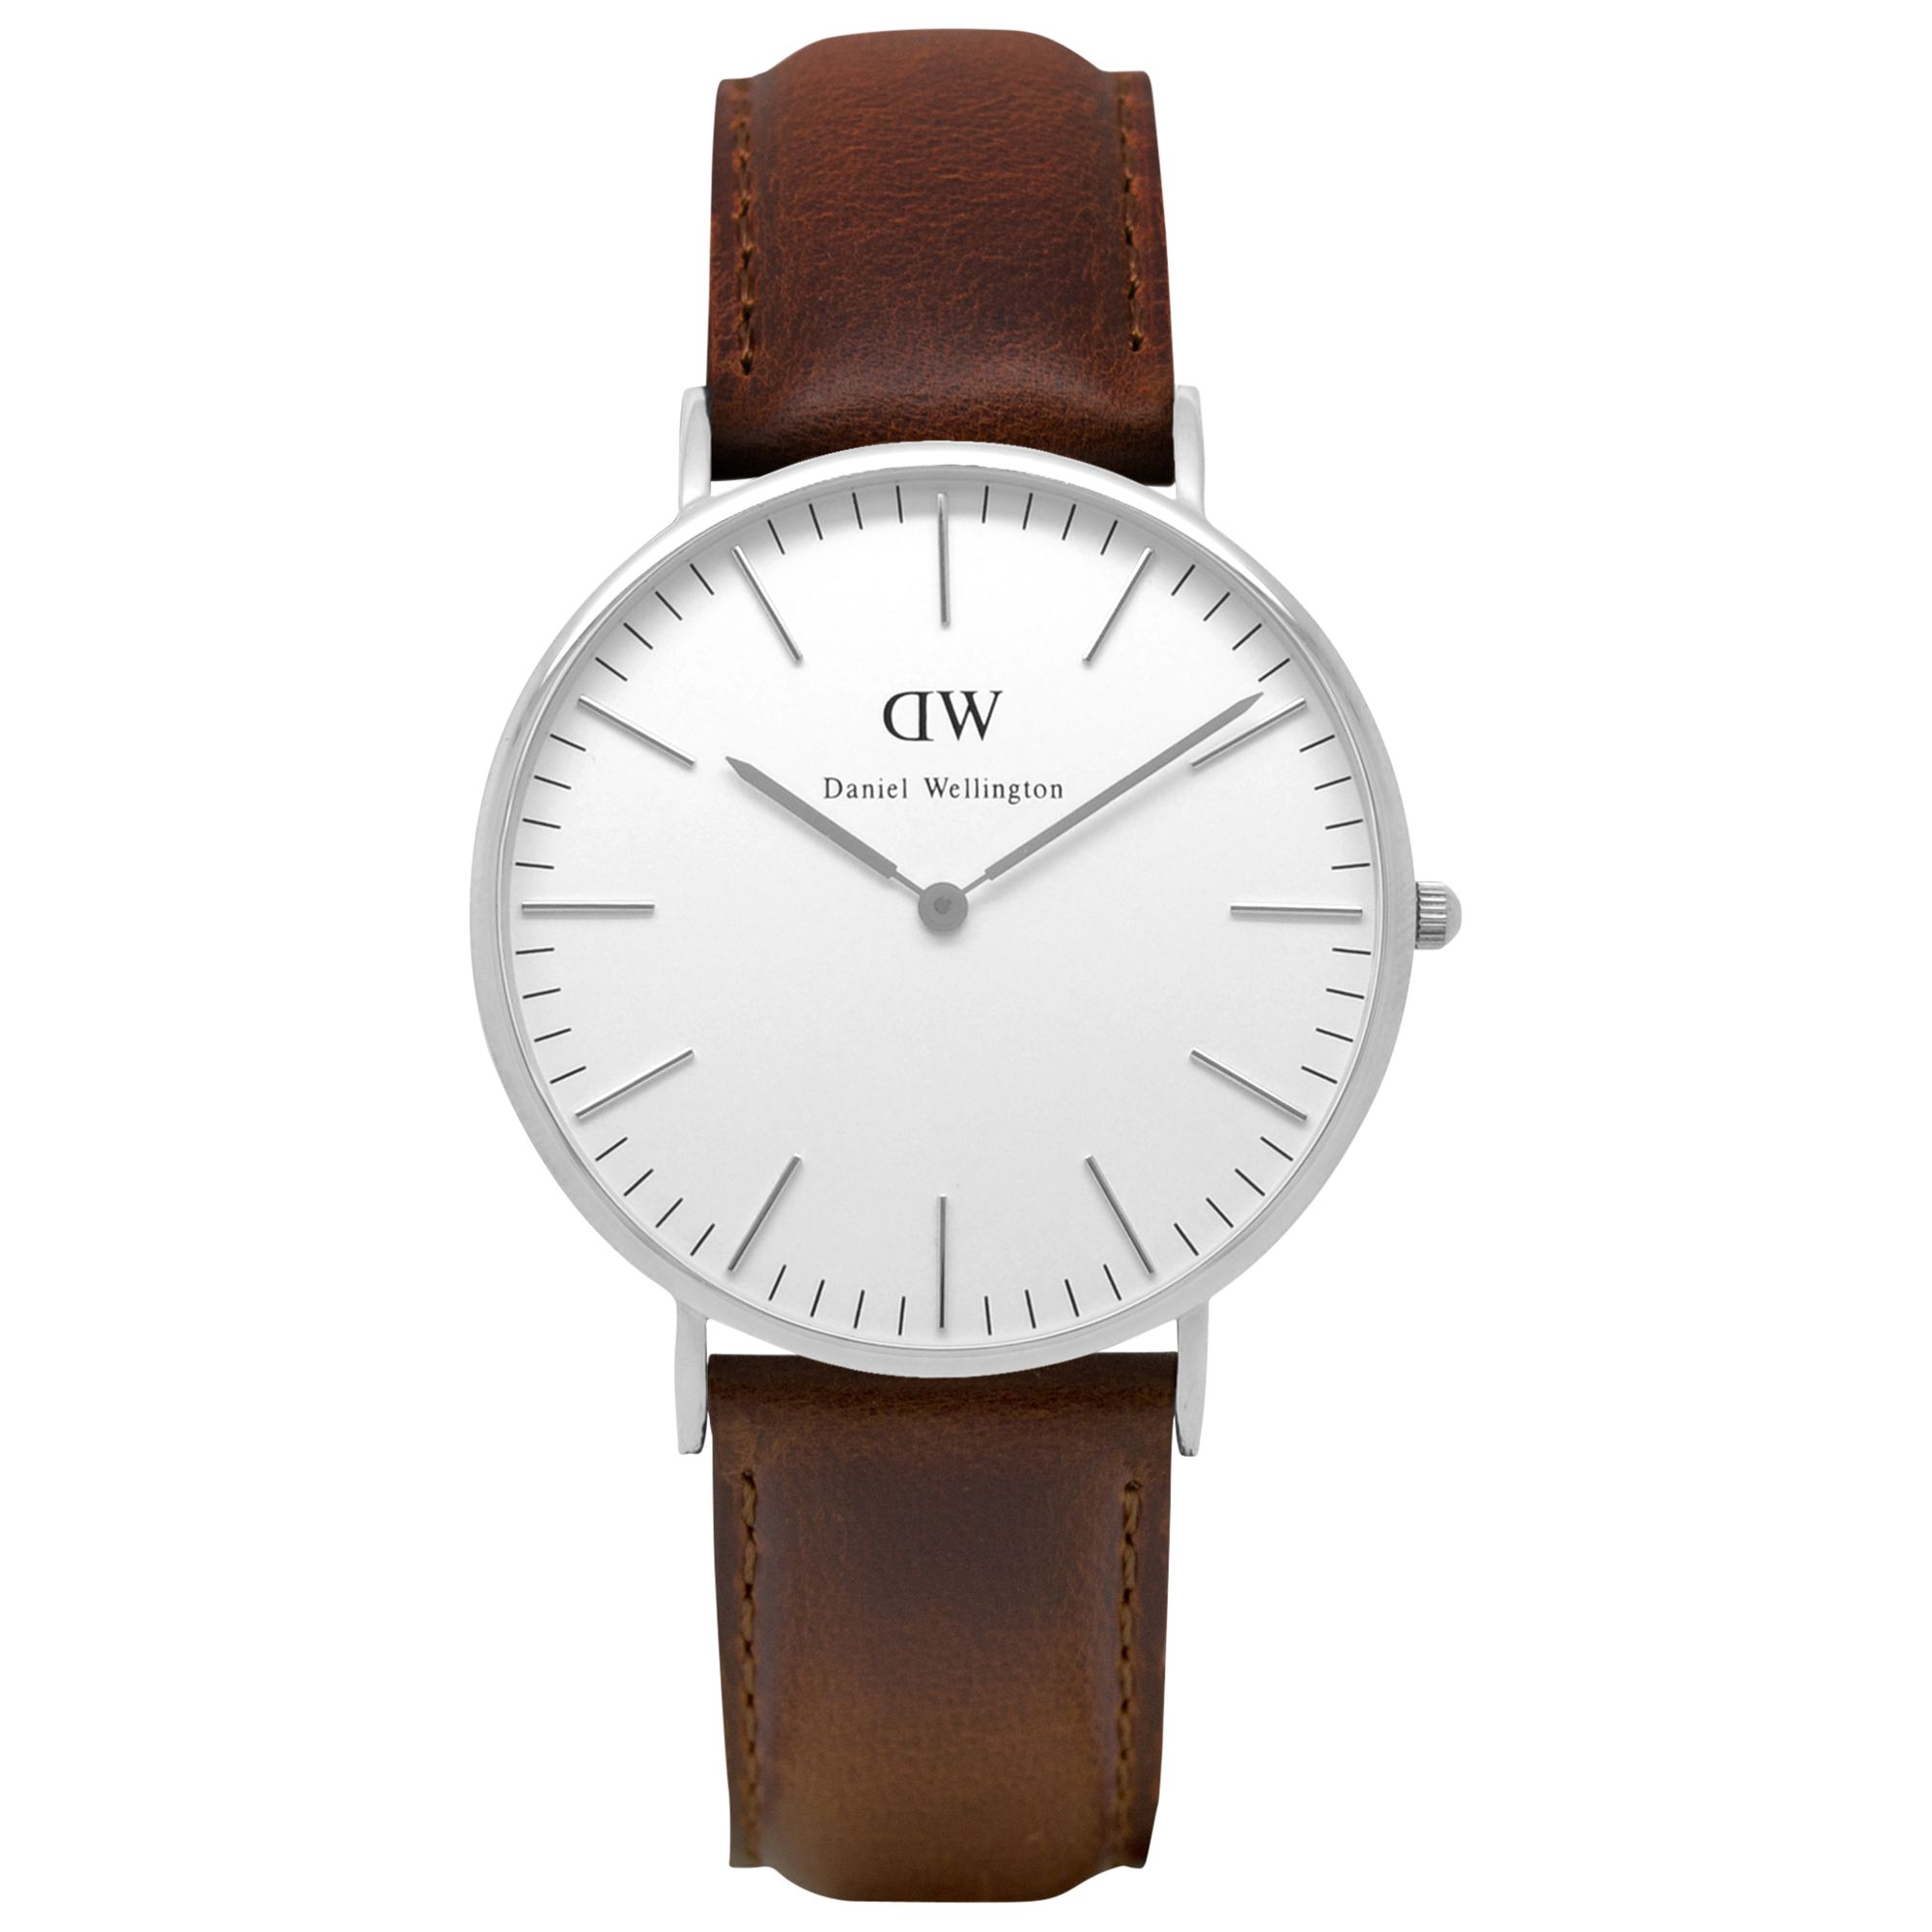 Daniel Wellington Daniel Wellington DW00100023 Men's 40mm Classic Bristol Leather Strap Watch, Tan/White